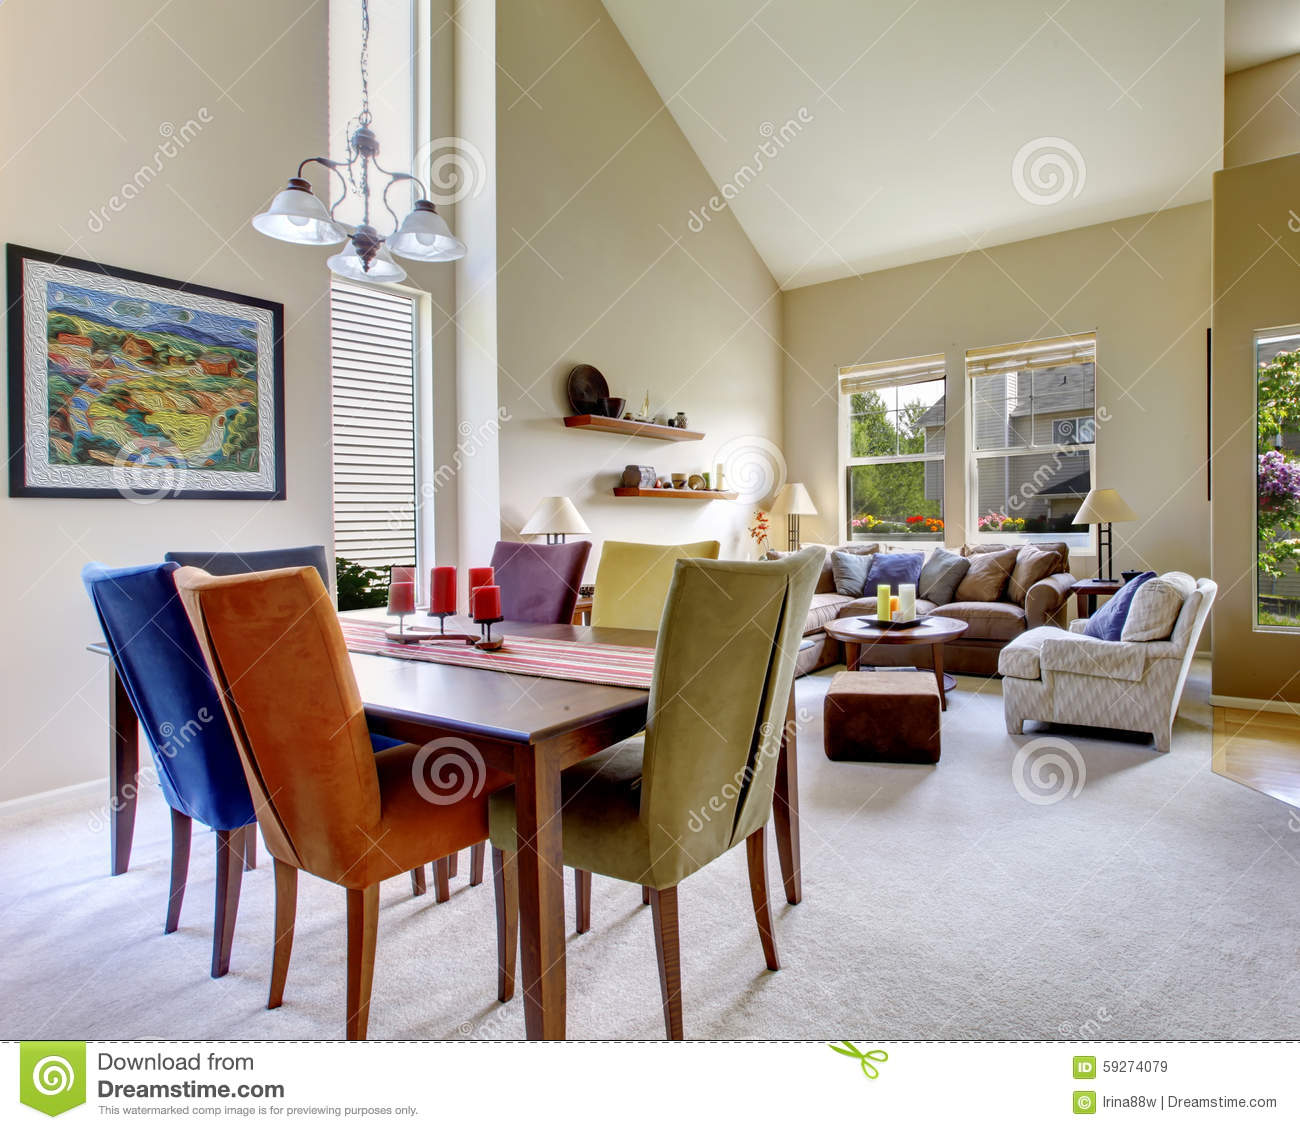 Large Beige Bright Living Room With Dining Room Table With Different Color Chairs Stock Image Image Of Celing Chair 59274079